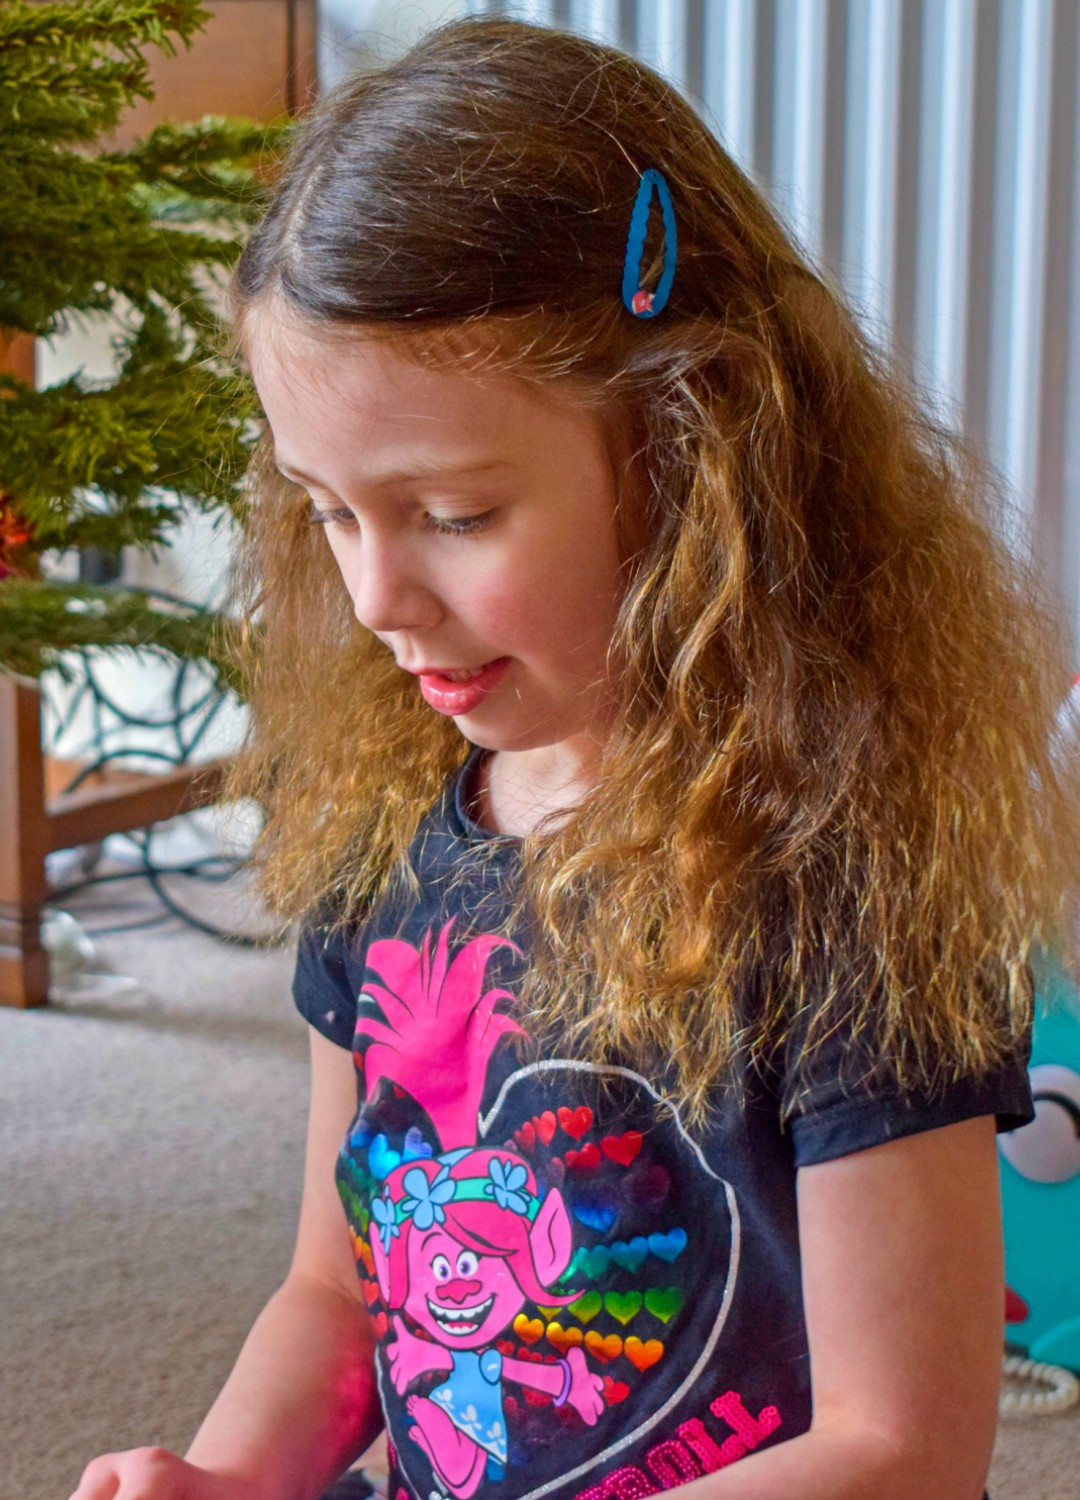 """A photograph of a little girl sitting in front of a Christmas tree and wearing a Trolls t-shirt from George at ASDA. The t-shirt features a motif of Princess Poppy from Trolls and the slogan """"Out of con-TROLL"""" - Having a Troll-tastic Christmas with Trolls Holiday -Mrs H's favourite things"""